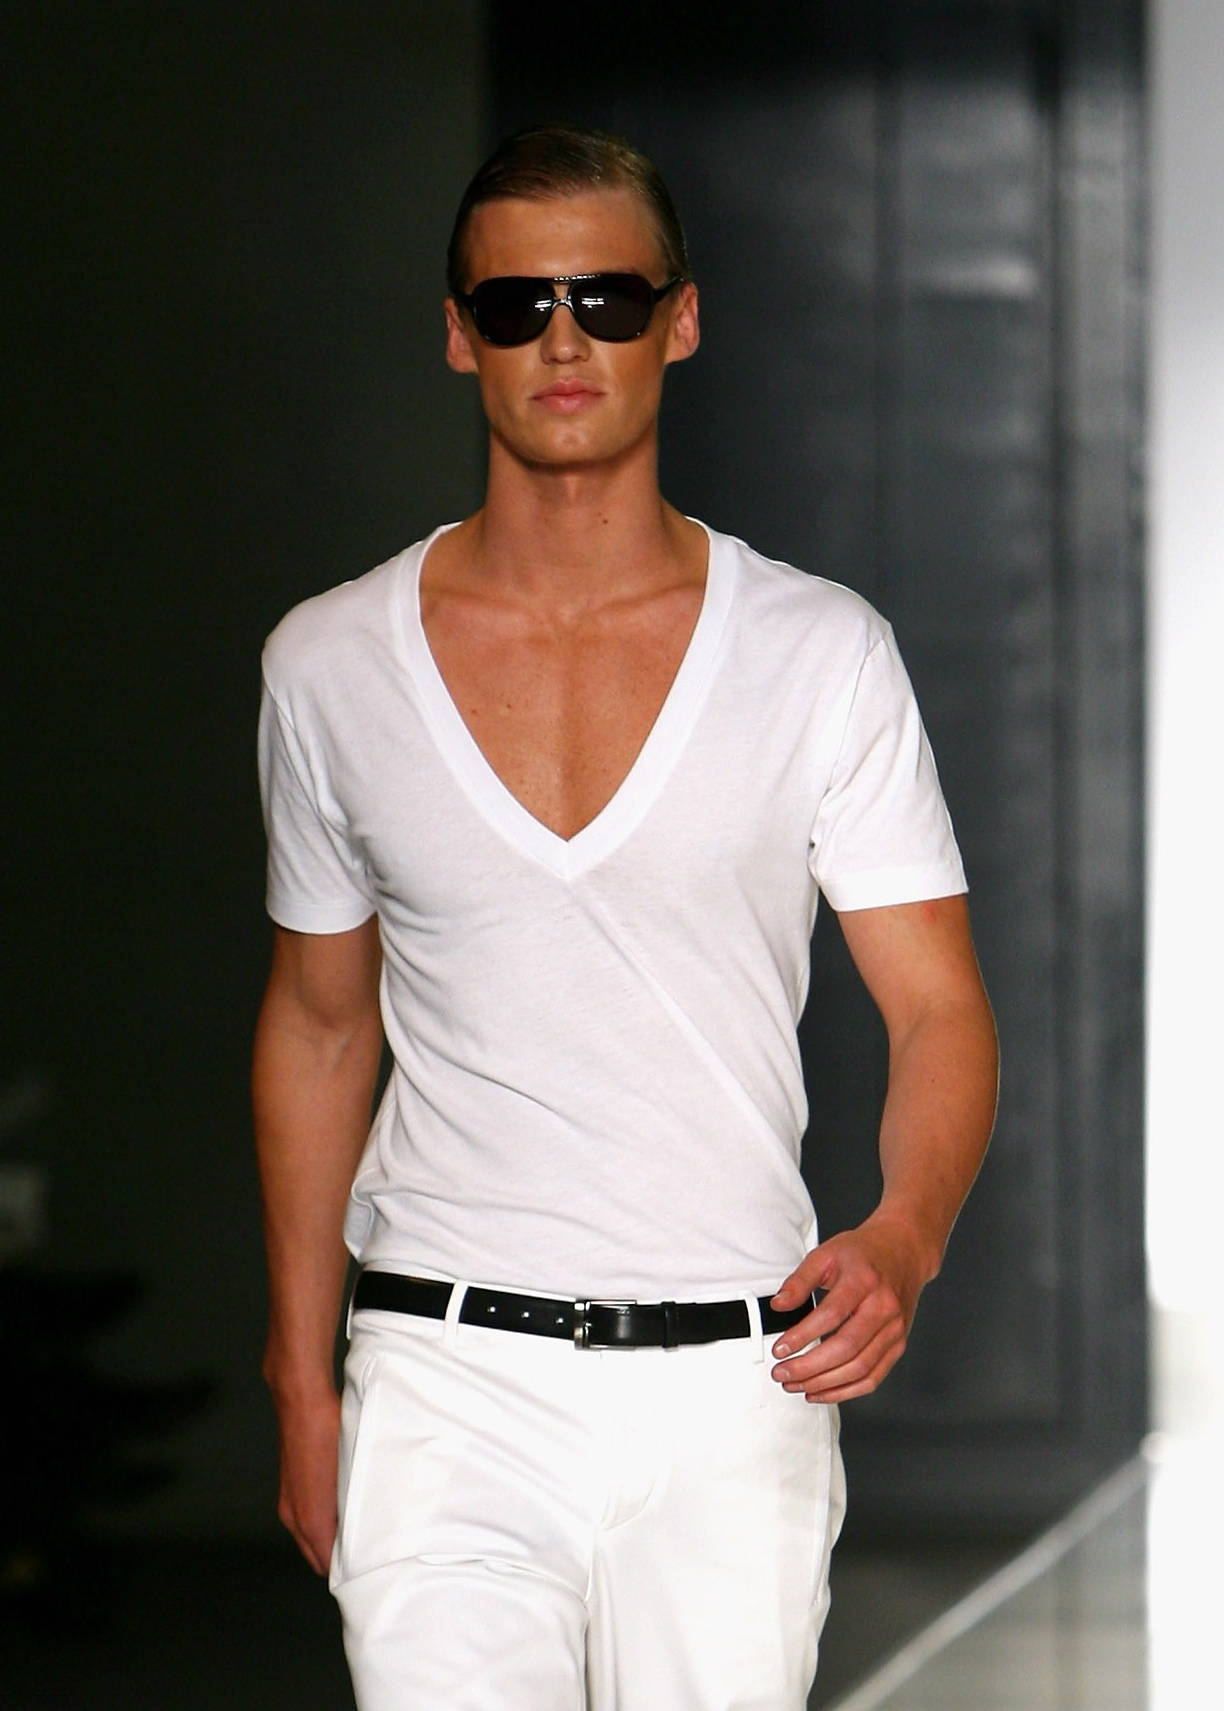 White on White fashion trend for men